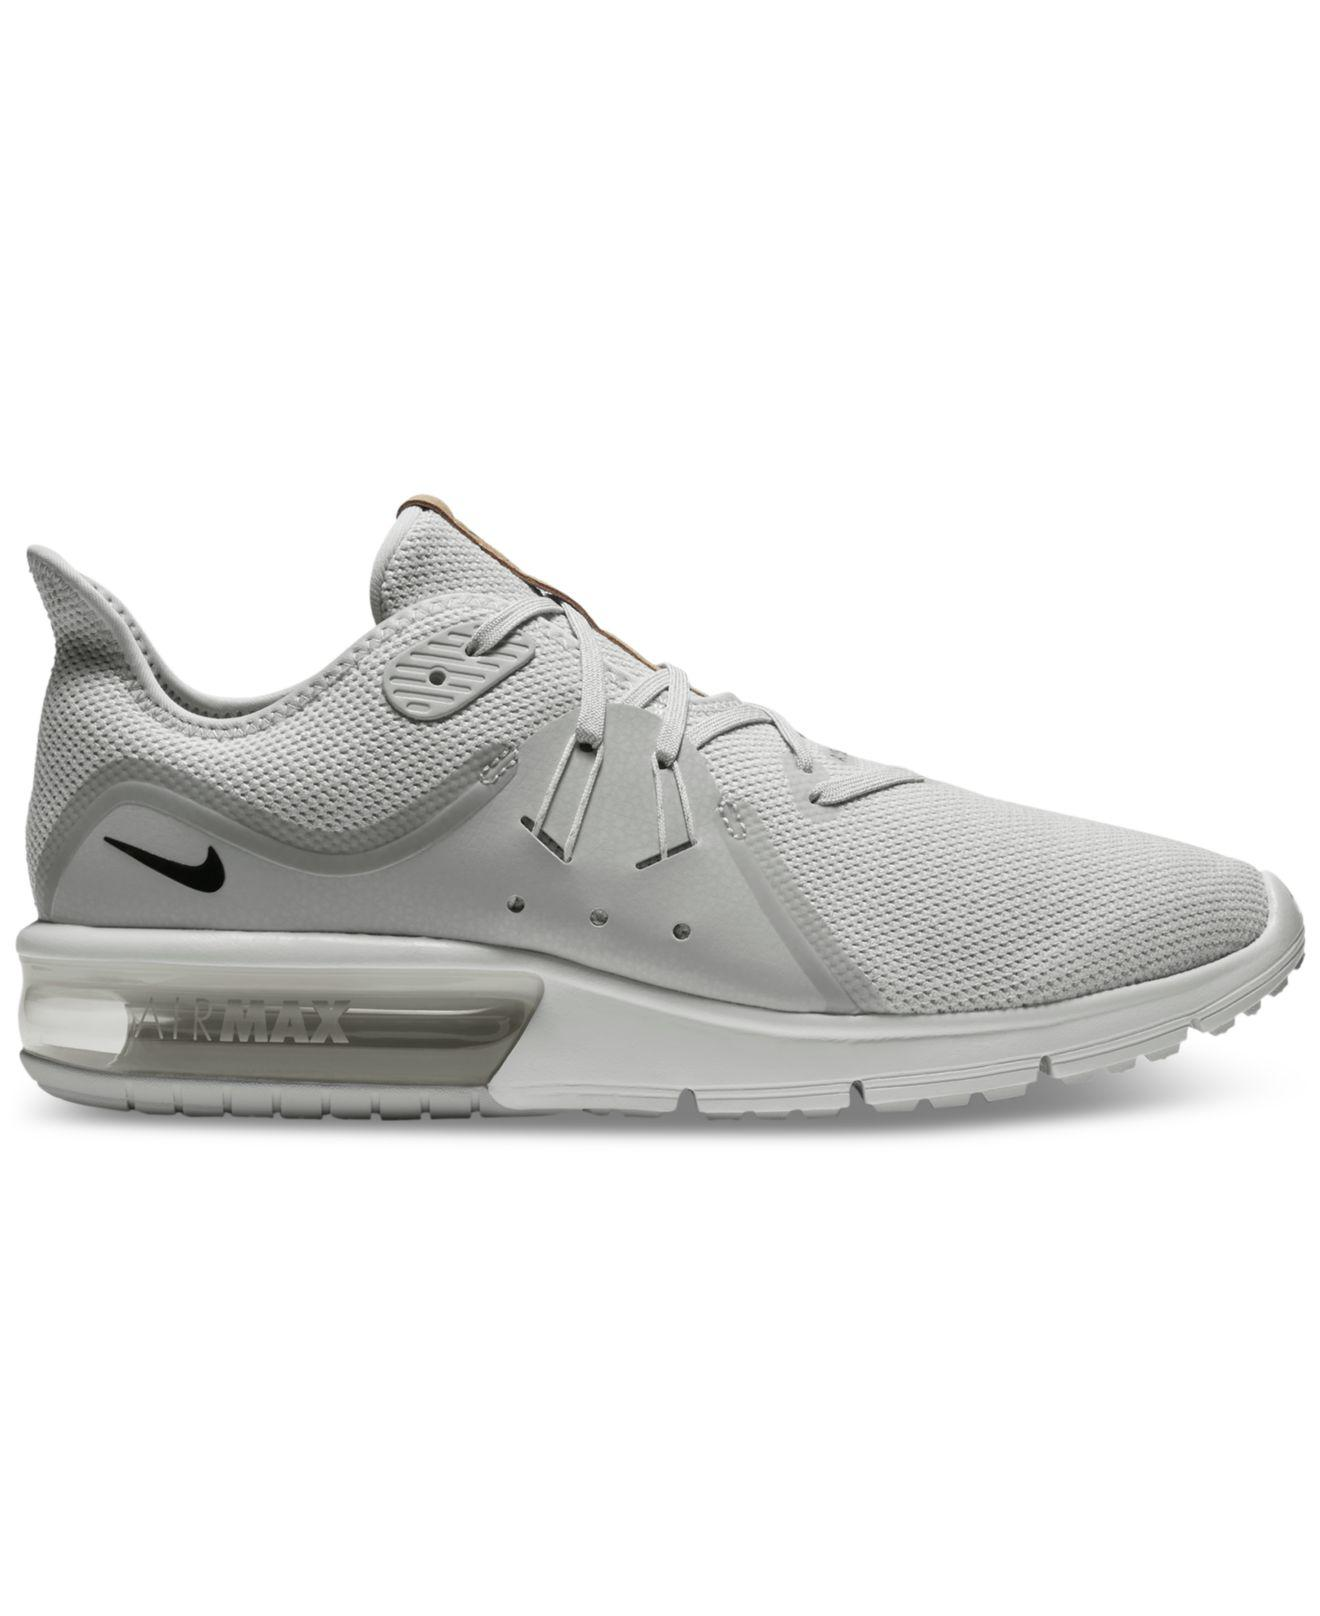 Lyst - Nike Men s Air Max Sequent 3 Running Sneakers From Finish ... 610264a1972e